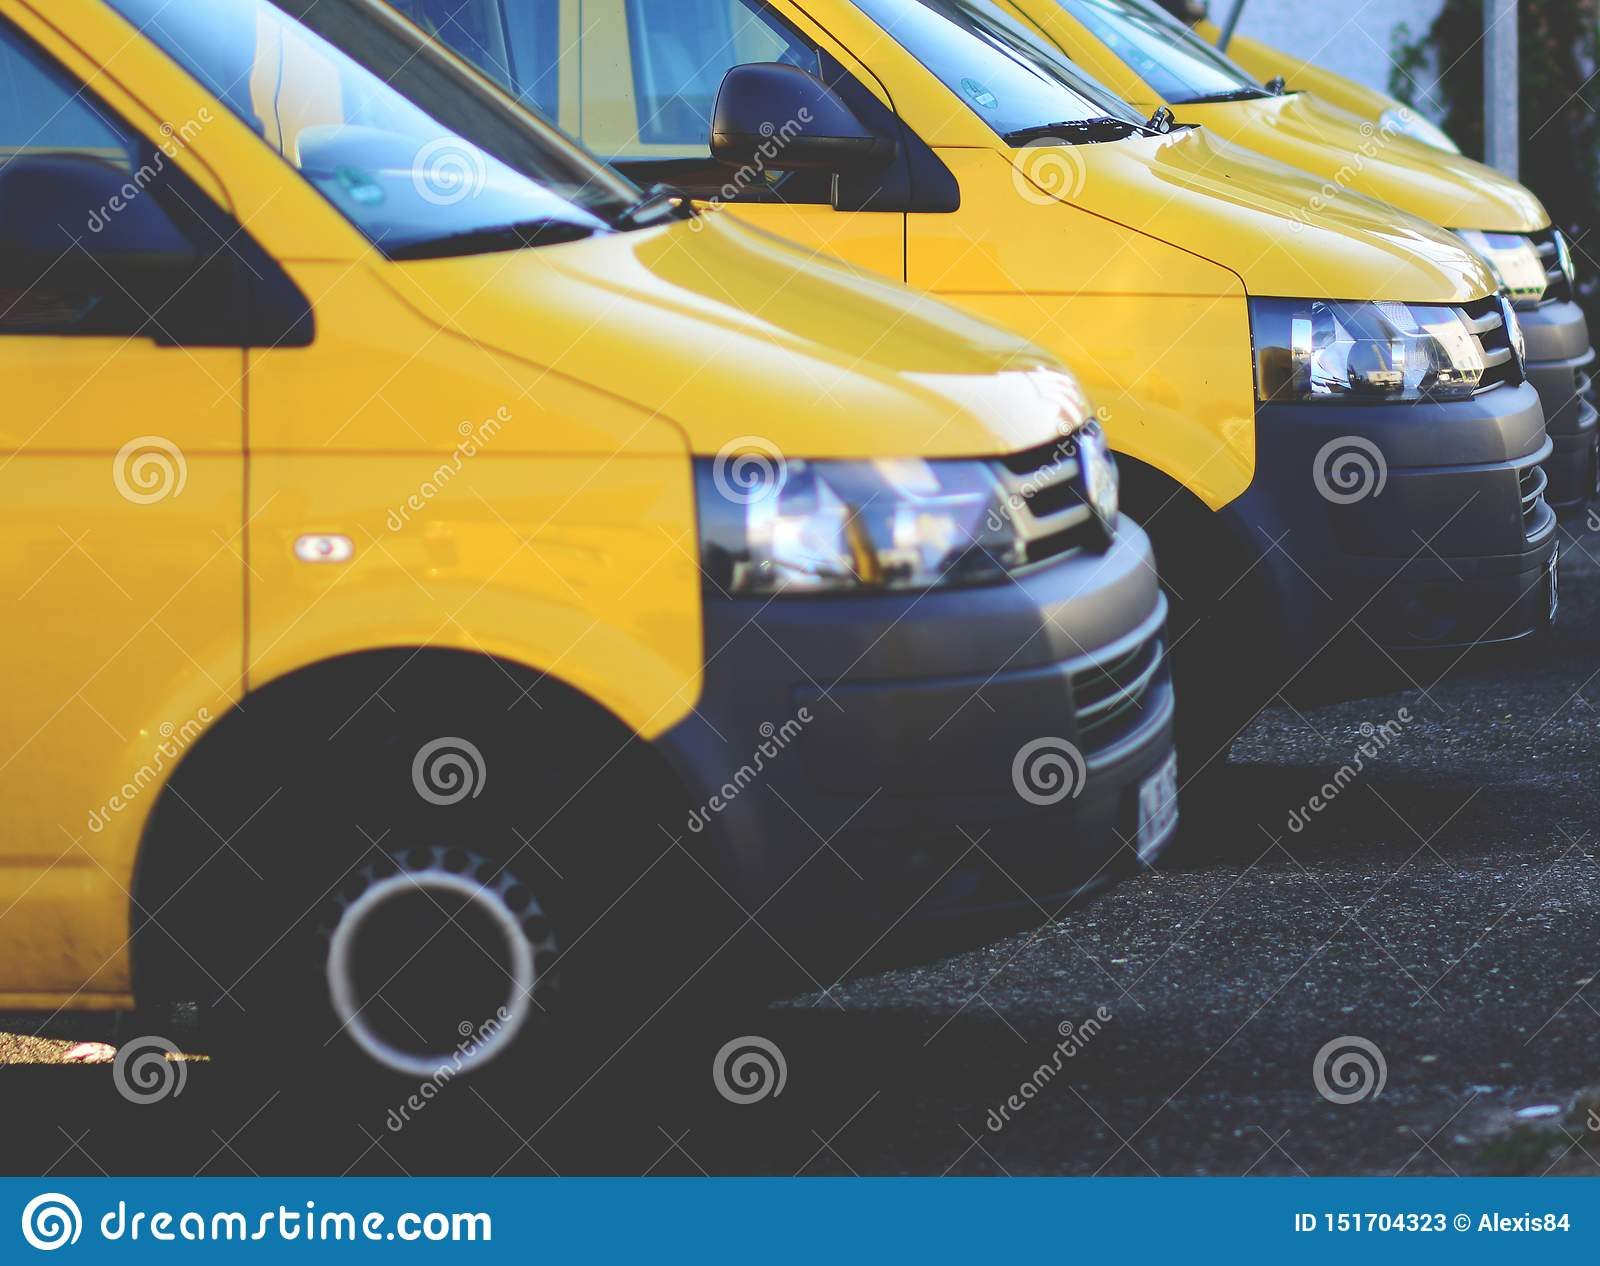 Concept Cars For Sale >> Cars For Sale Or Service Concept Stock Image Image Of